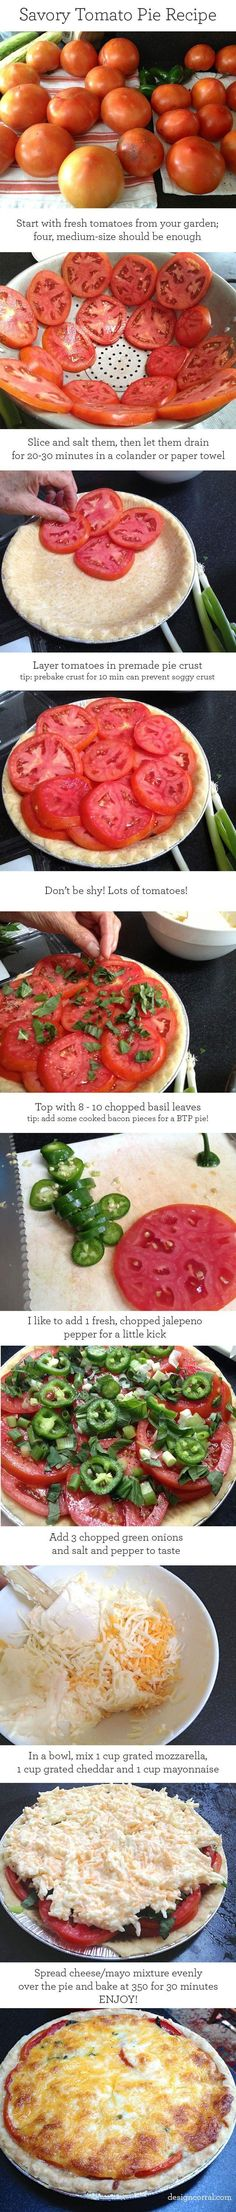 Savory tomato pie. Cheat treat recipe! Sub sour cream or Greek yogurt for mayo.